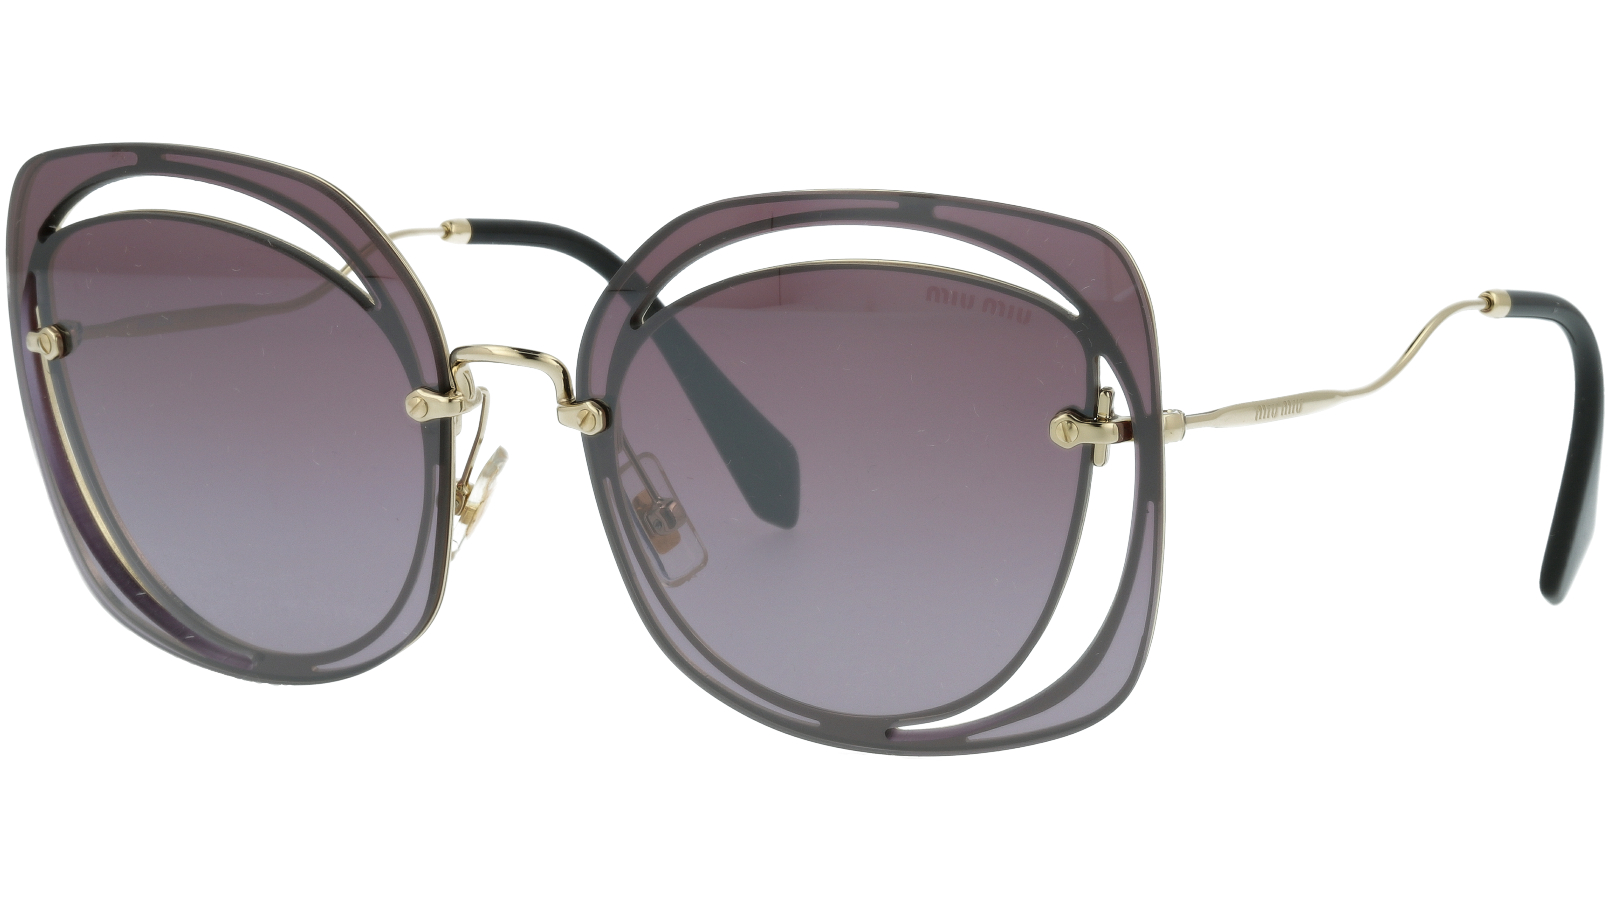 MIU MIU MU54SS ZVNAD6 64 PURPLE Sunglasses